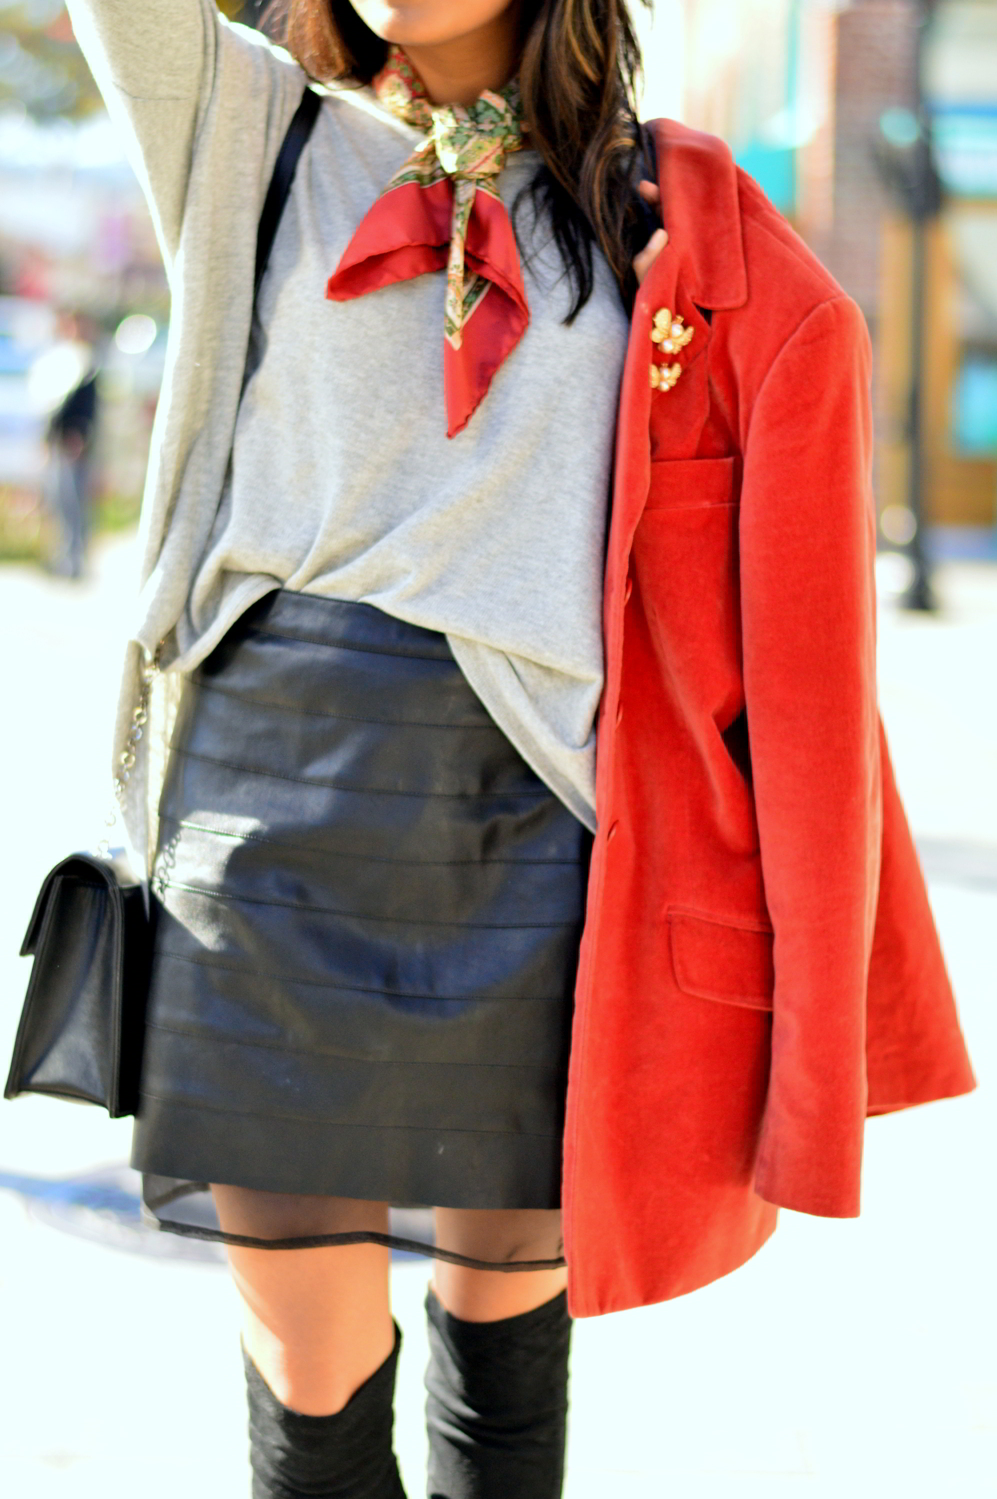 transitional-spring-style-textures-suede-leather-skirt-knits-blogger-style 6